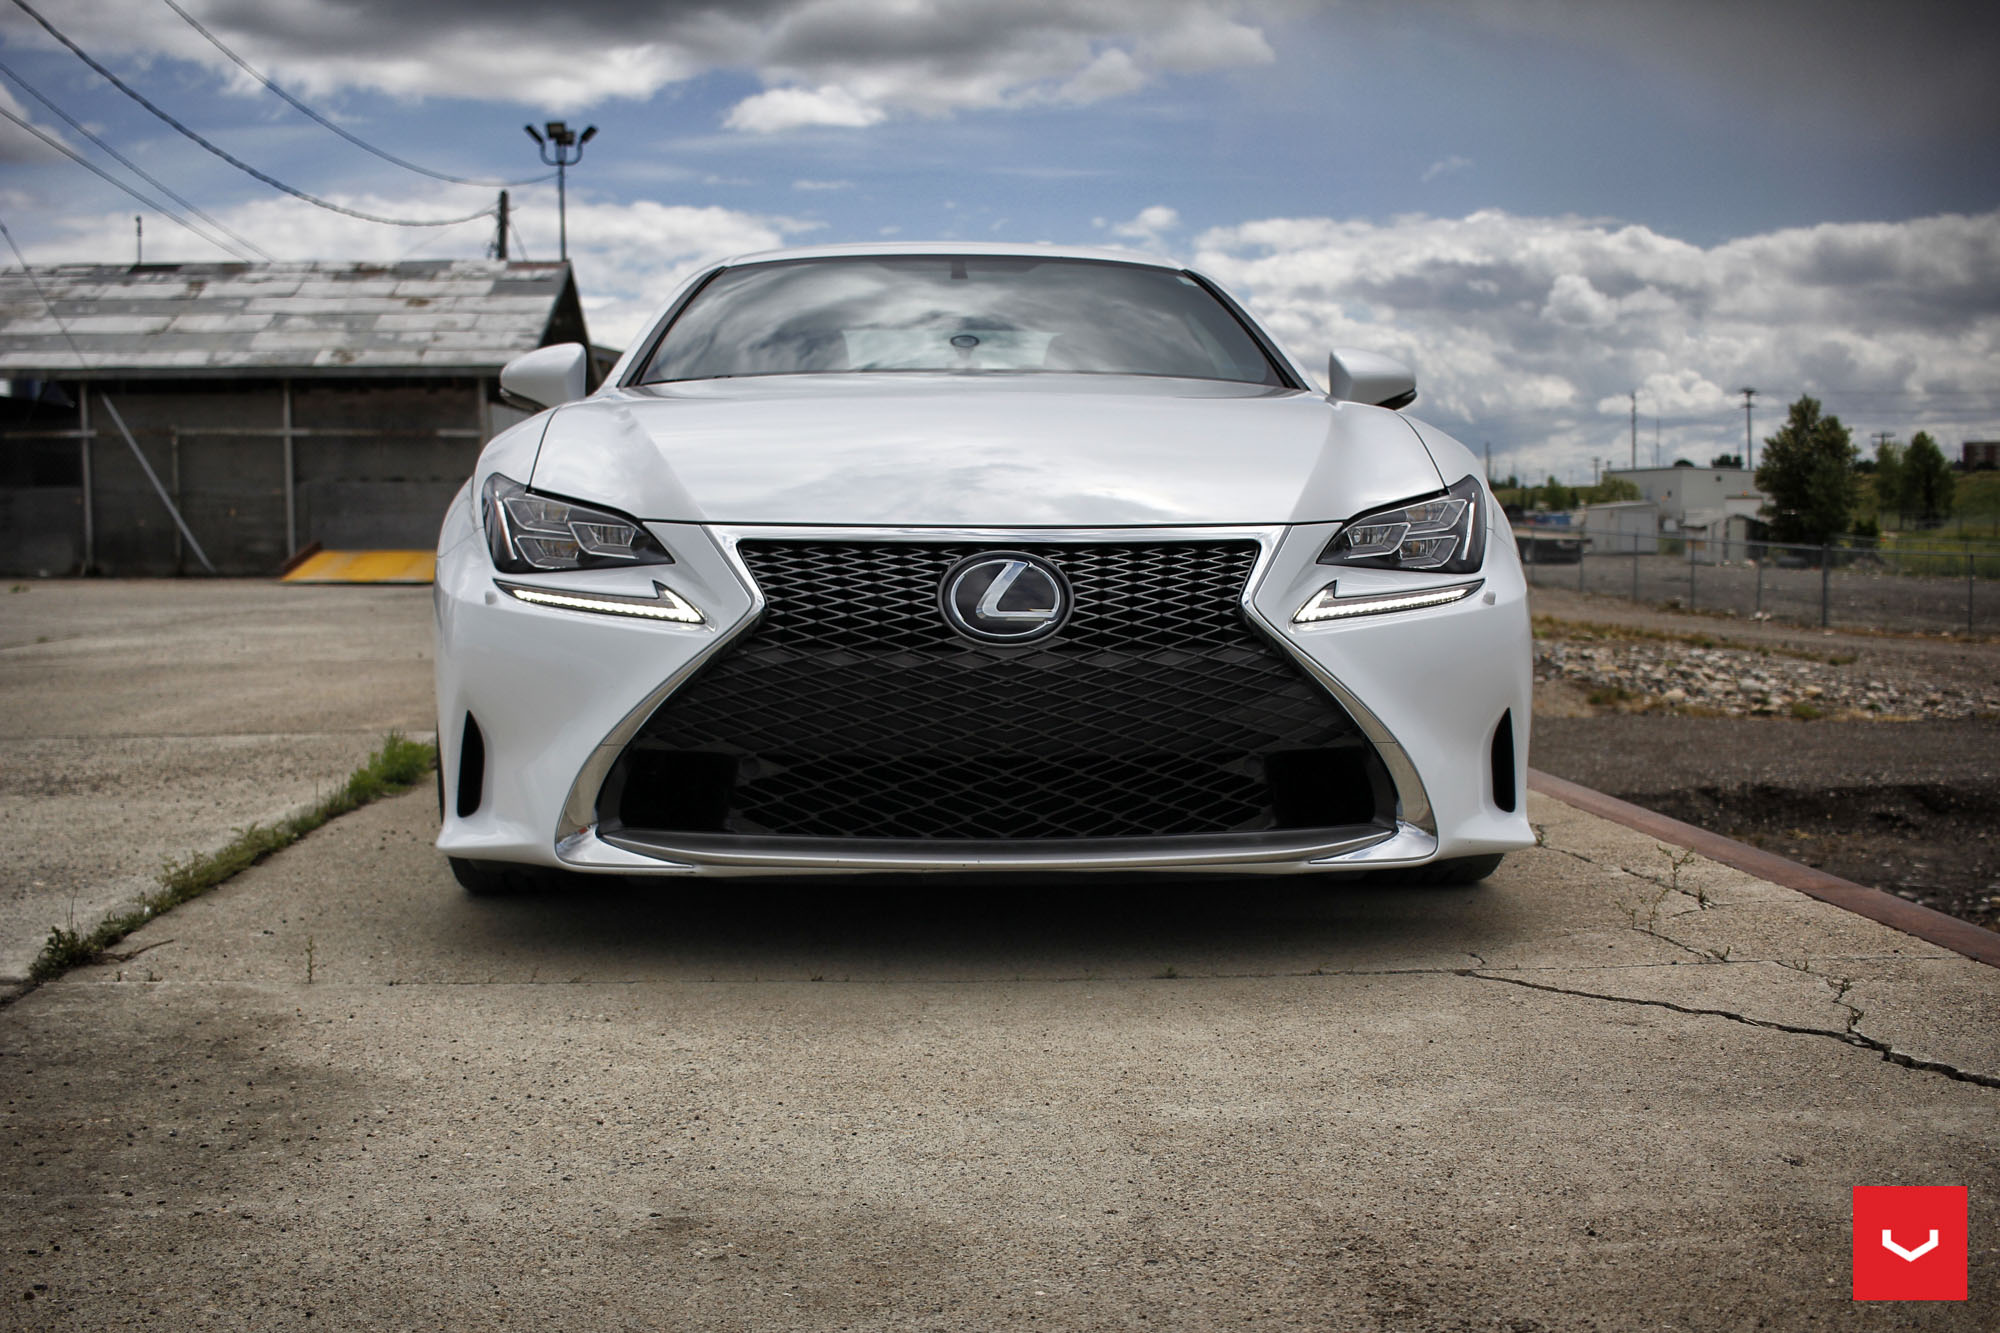 2015 Mustang Wheels >> White Lexus RCF on Vossen Wheels Has the Look of a Cult Car - autoevolution